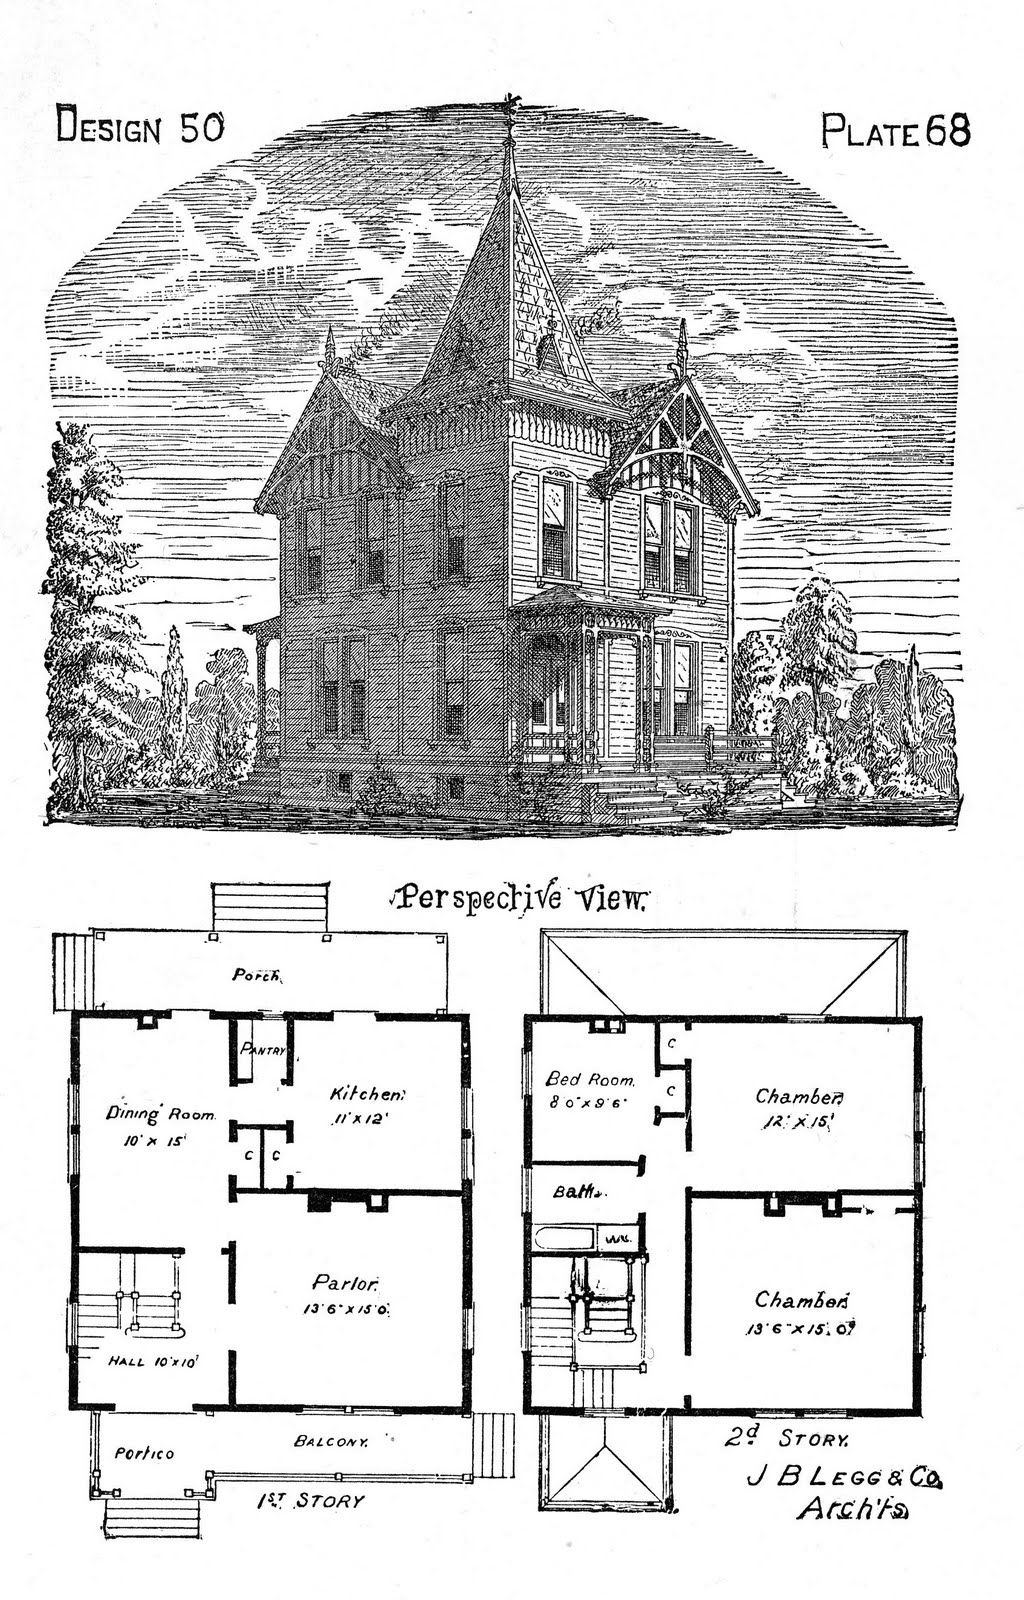 Make your own house plans online for free  Free Antique Clip Art  Victorian Houses  Pinterest  Victorian